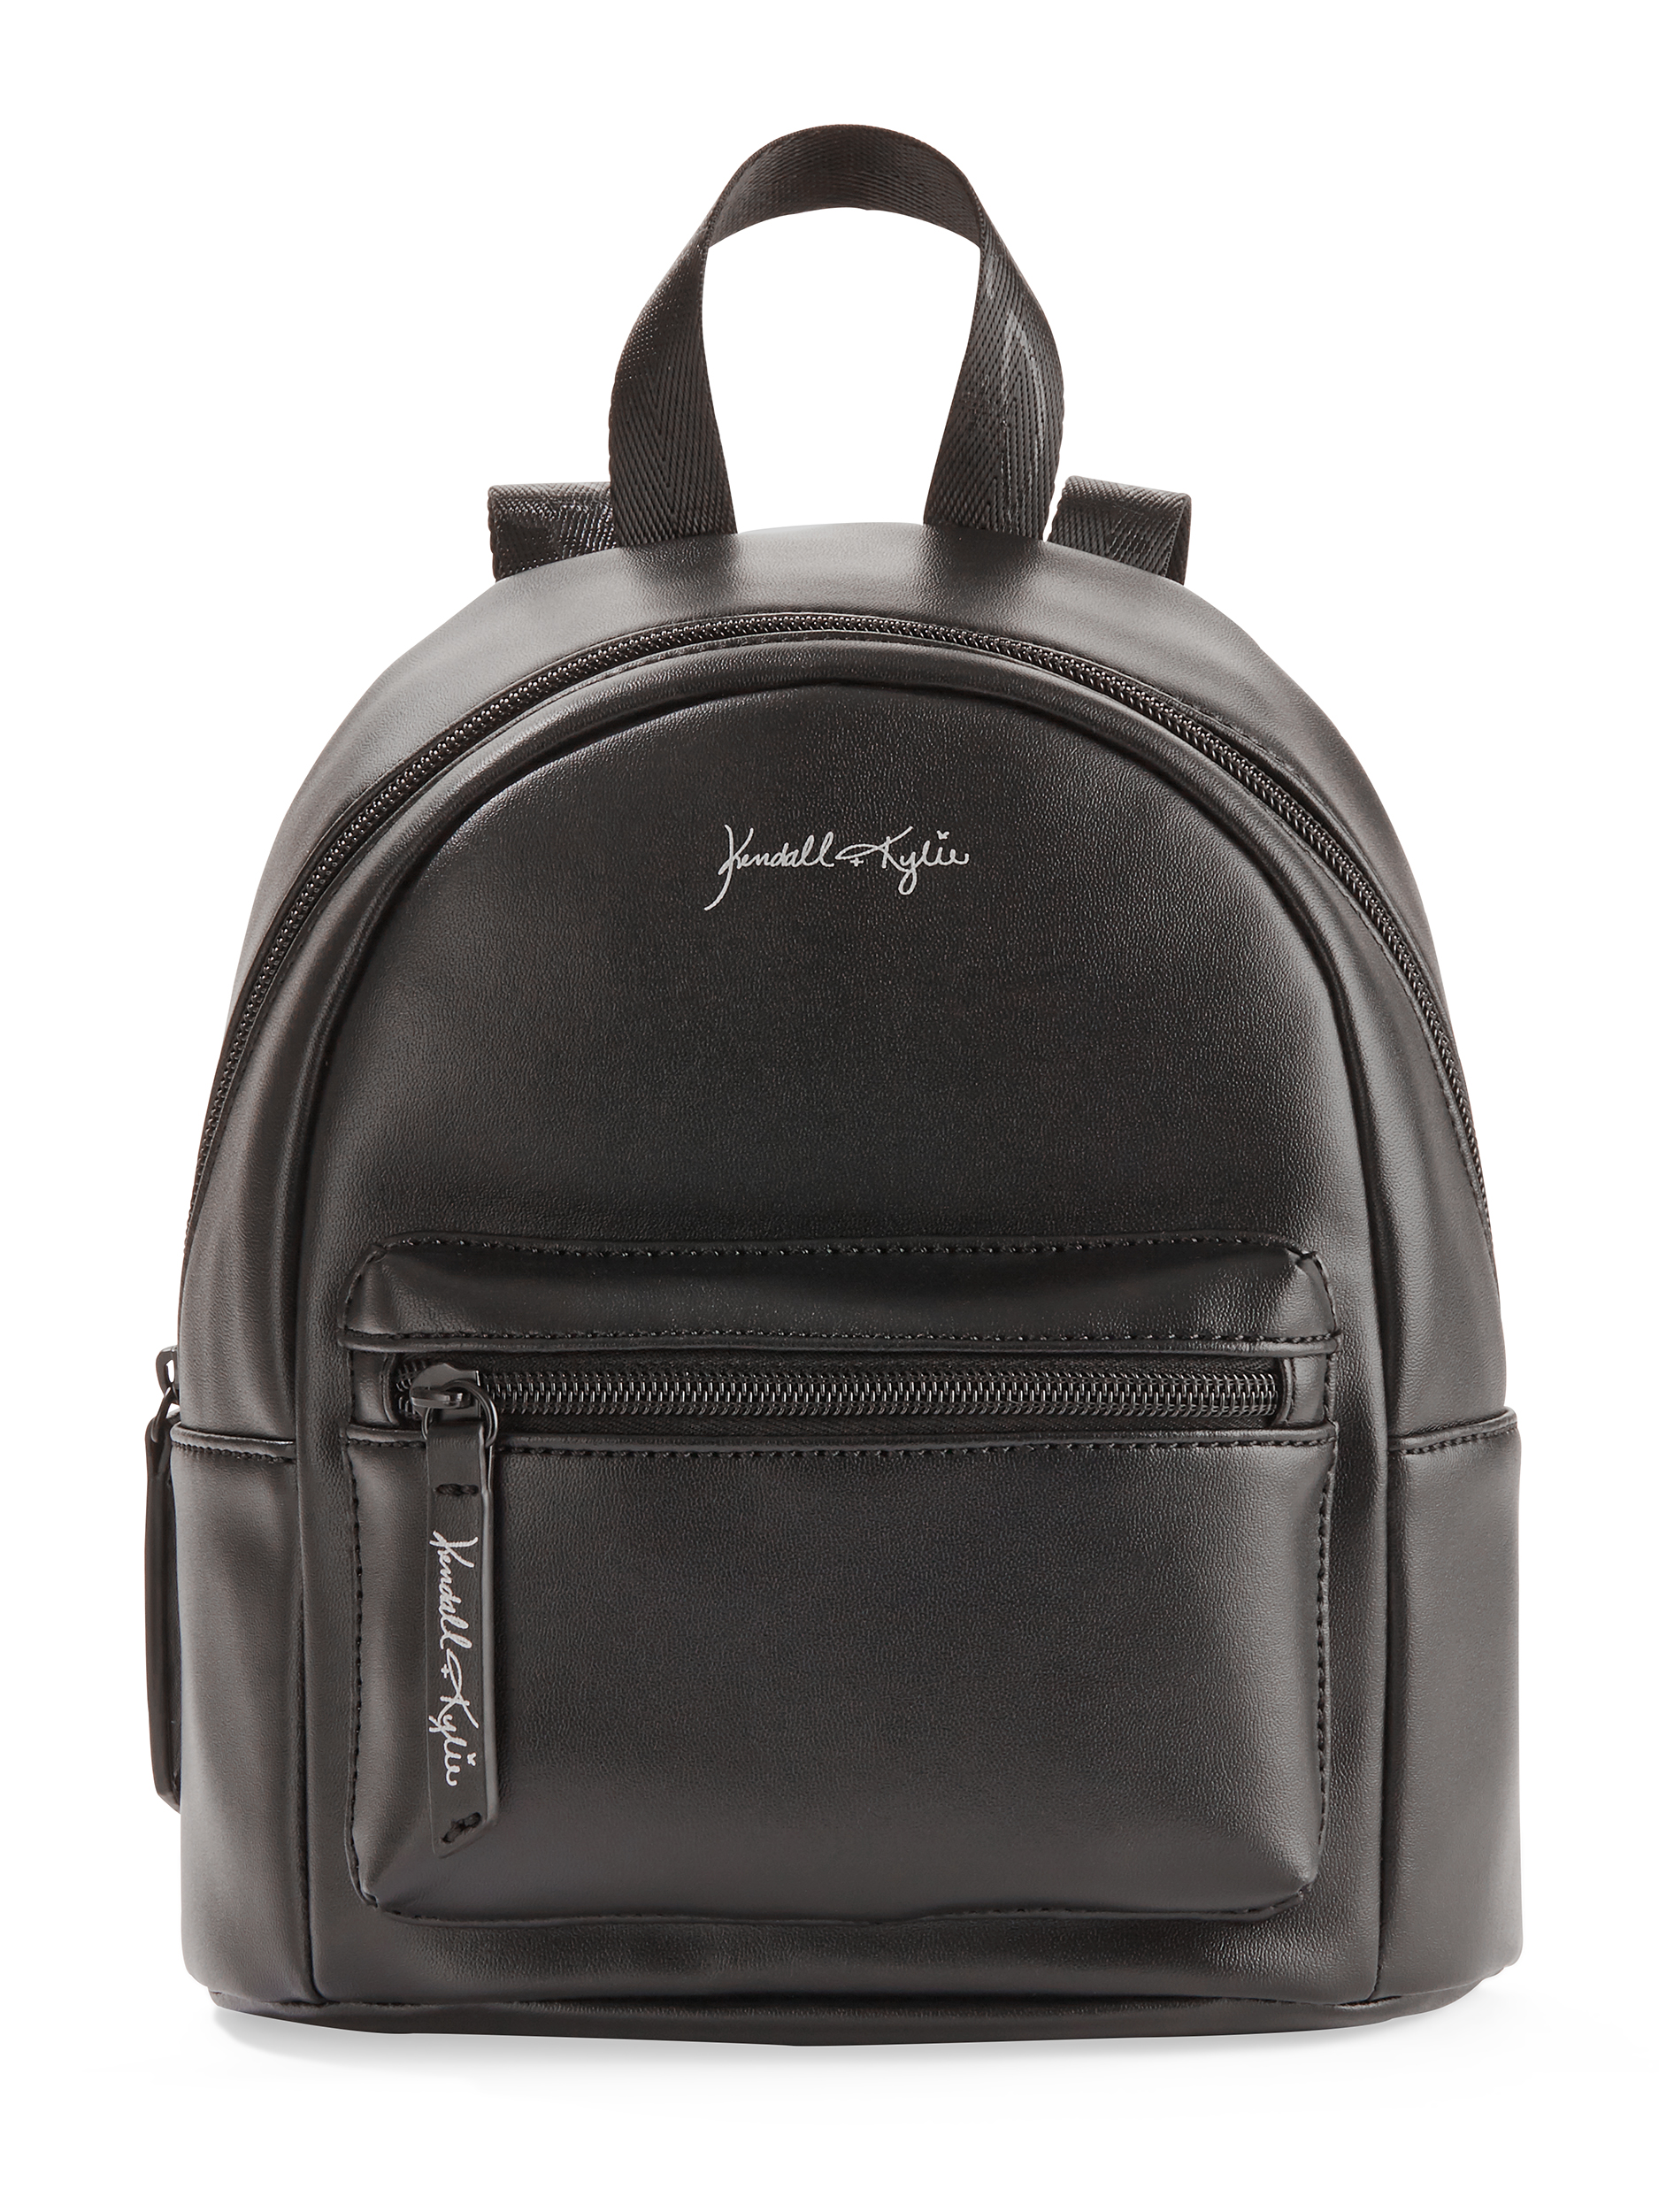 Kendall + Kylie for Walmart Black Faux Leather Mini Backpack